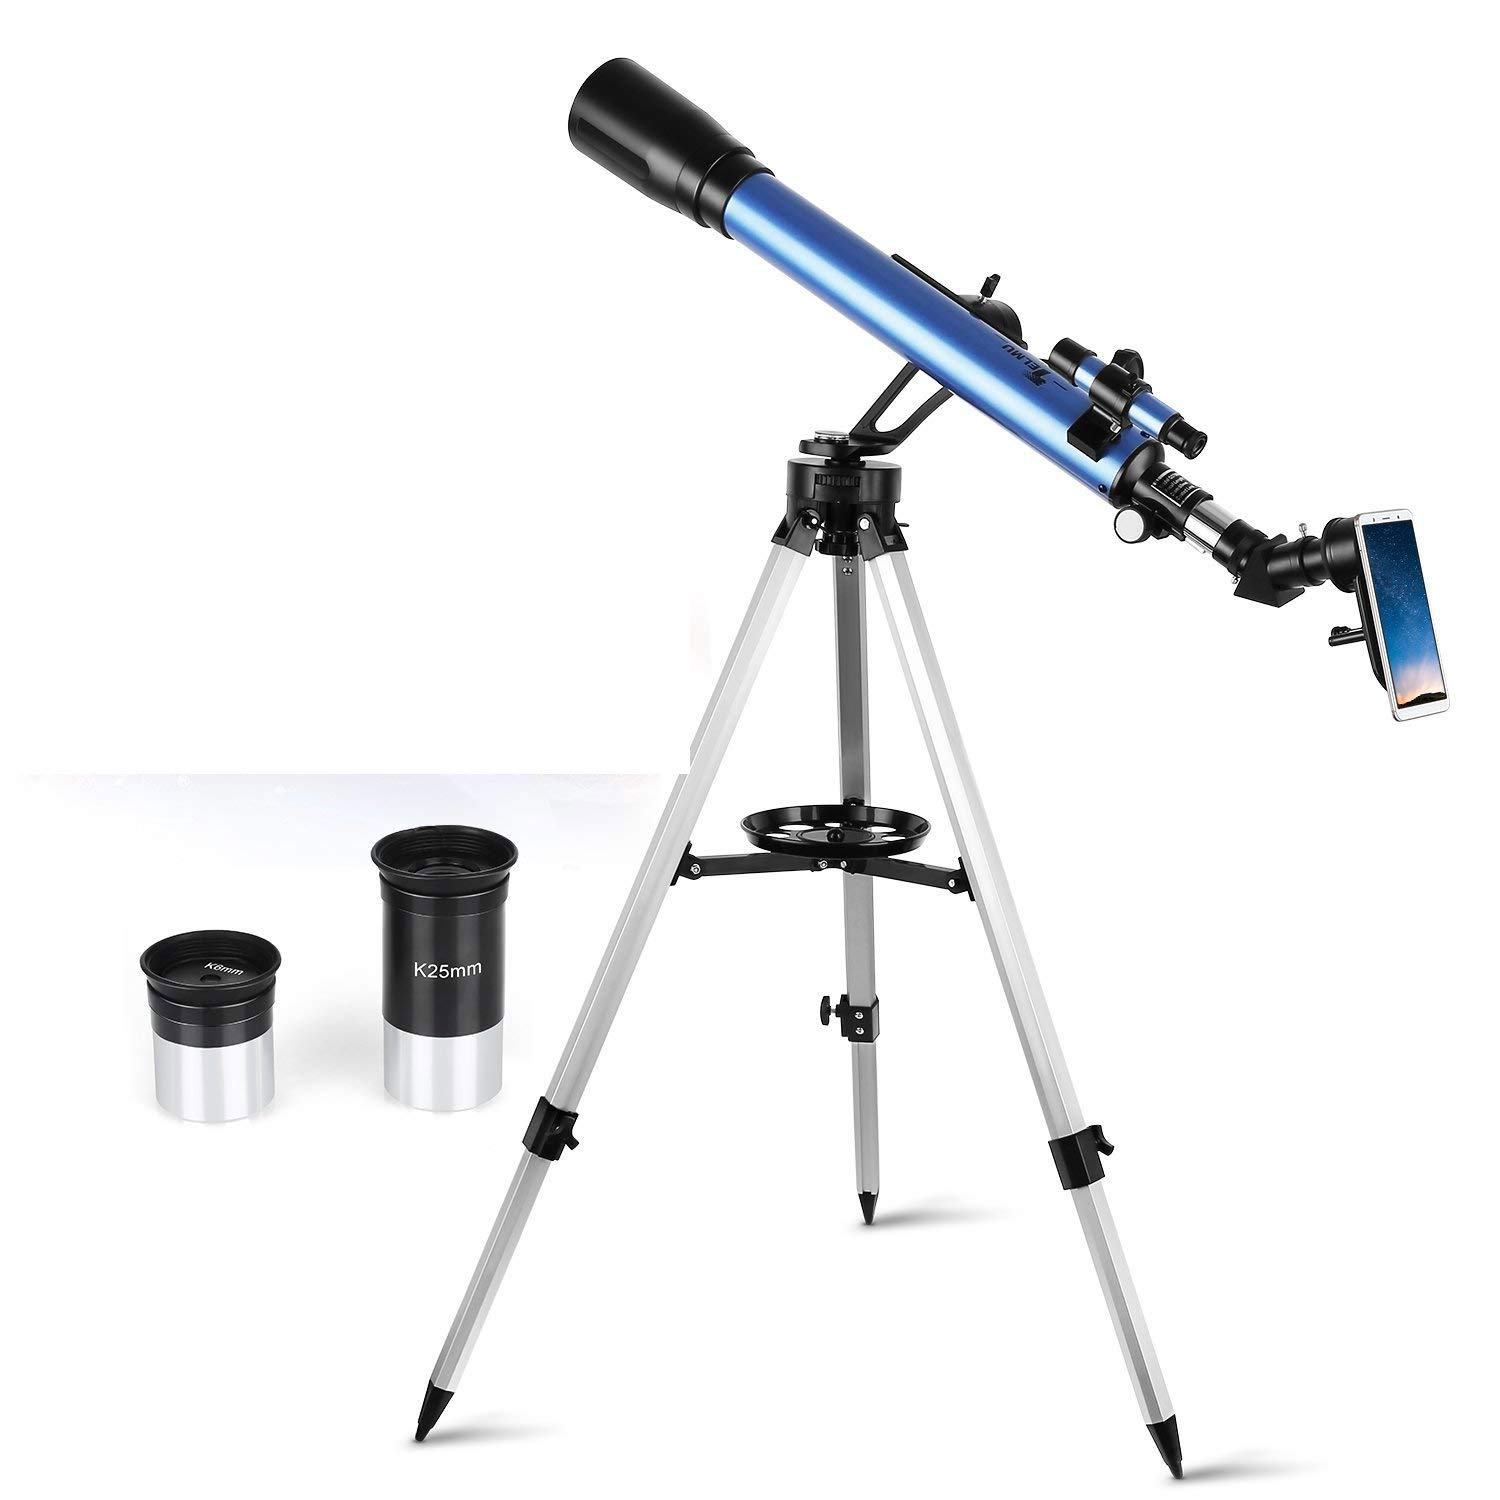 TELMU Telescope, 60mm Aperture & 700mm Focal Length (27.5In-46.5In) Astronomical Refractor Telescope with Adjustable Tripod & & Finder Scope- Portable Travel Telescope Perfect for Kids Children